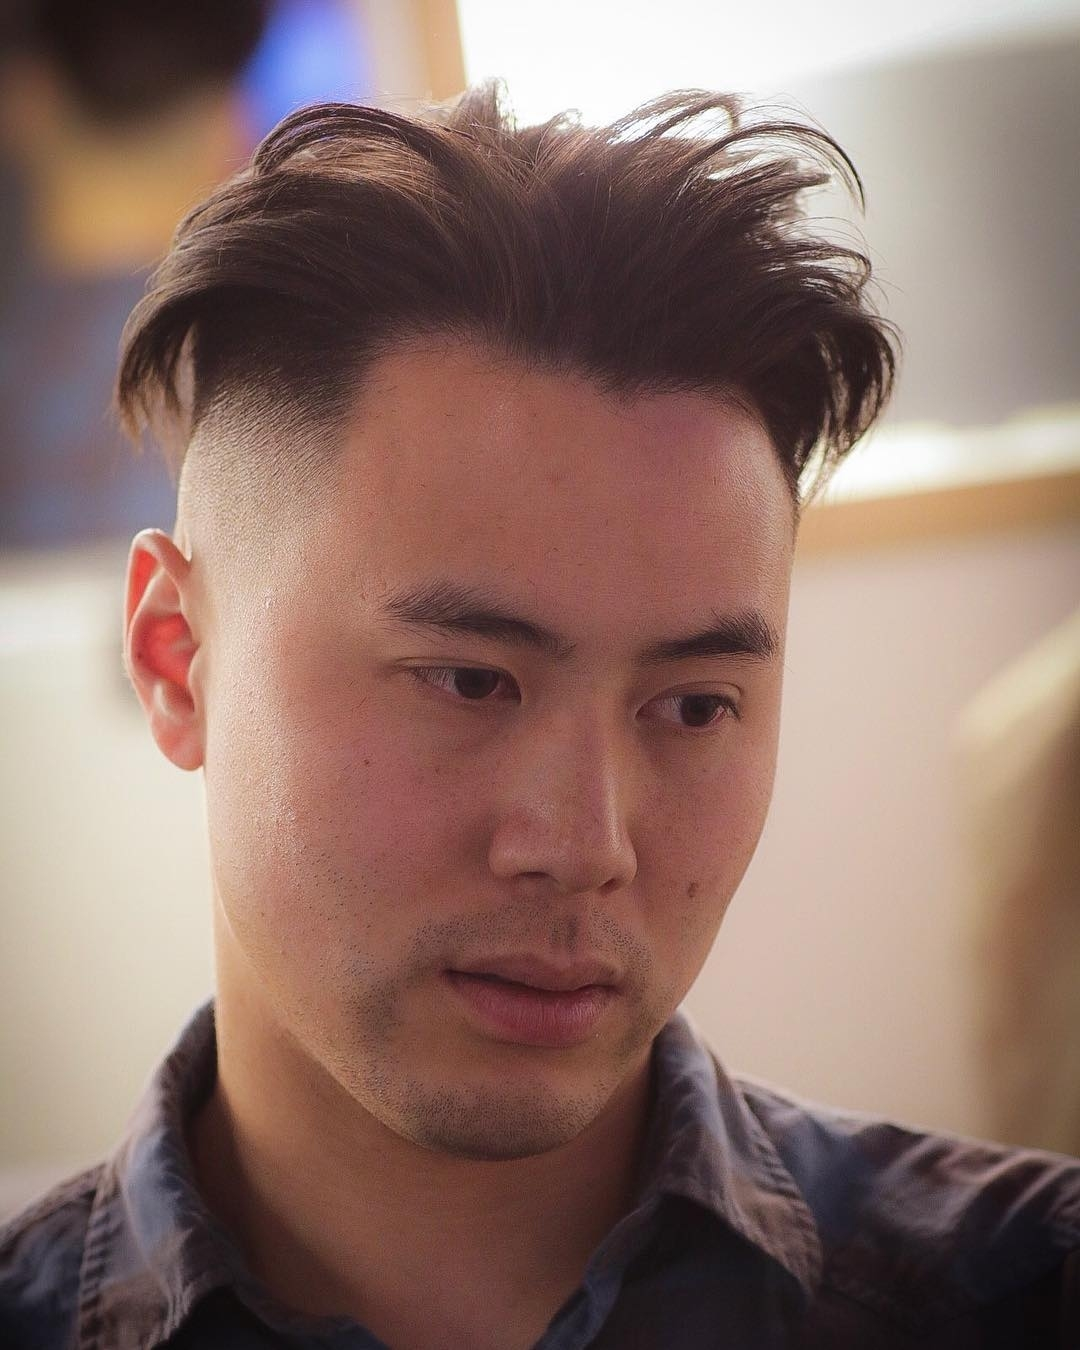 Best Hairstyles For Asian Men within Amazing Best Hairstyles For Asian Male Round Face